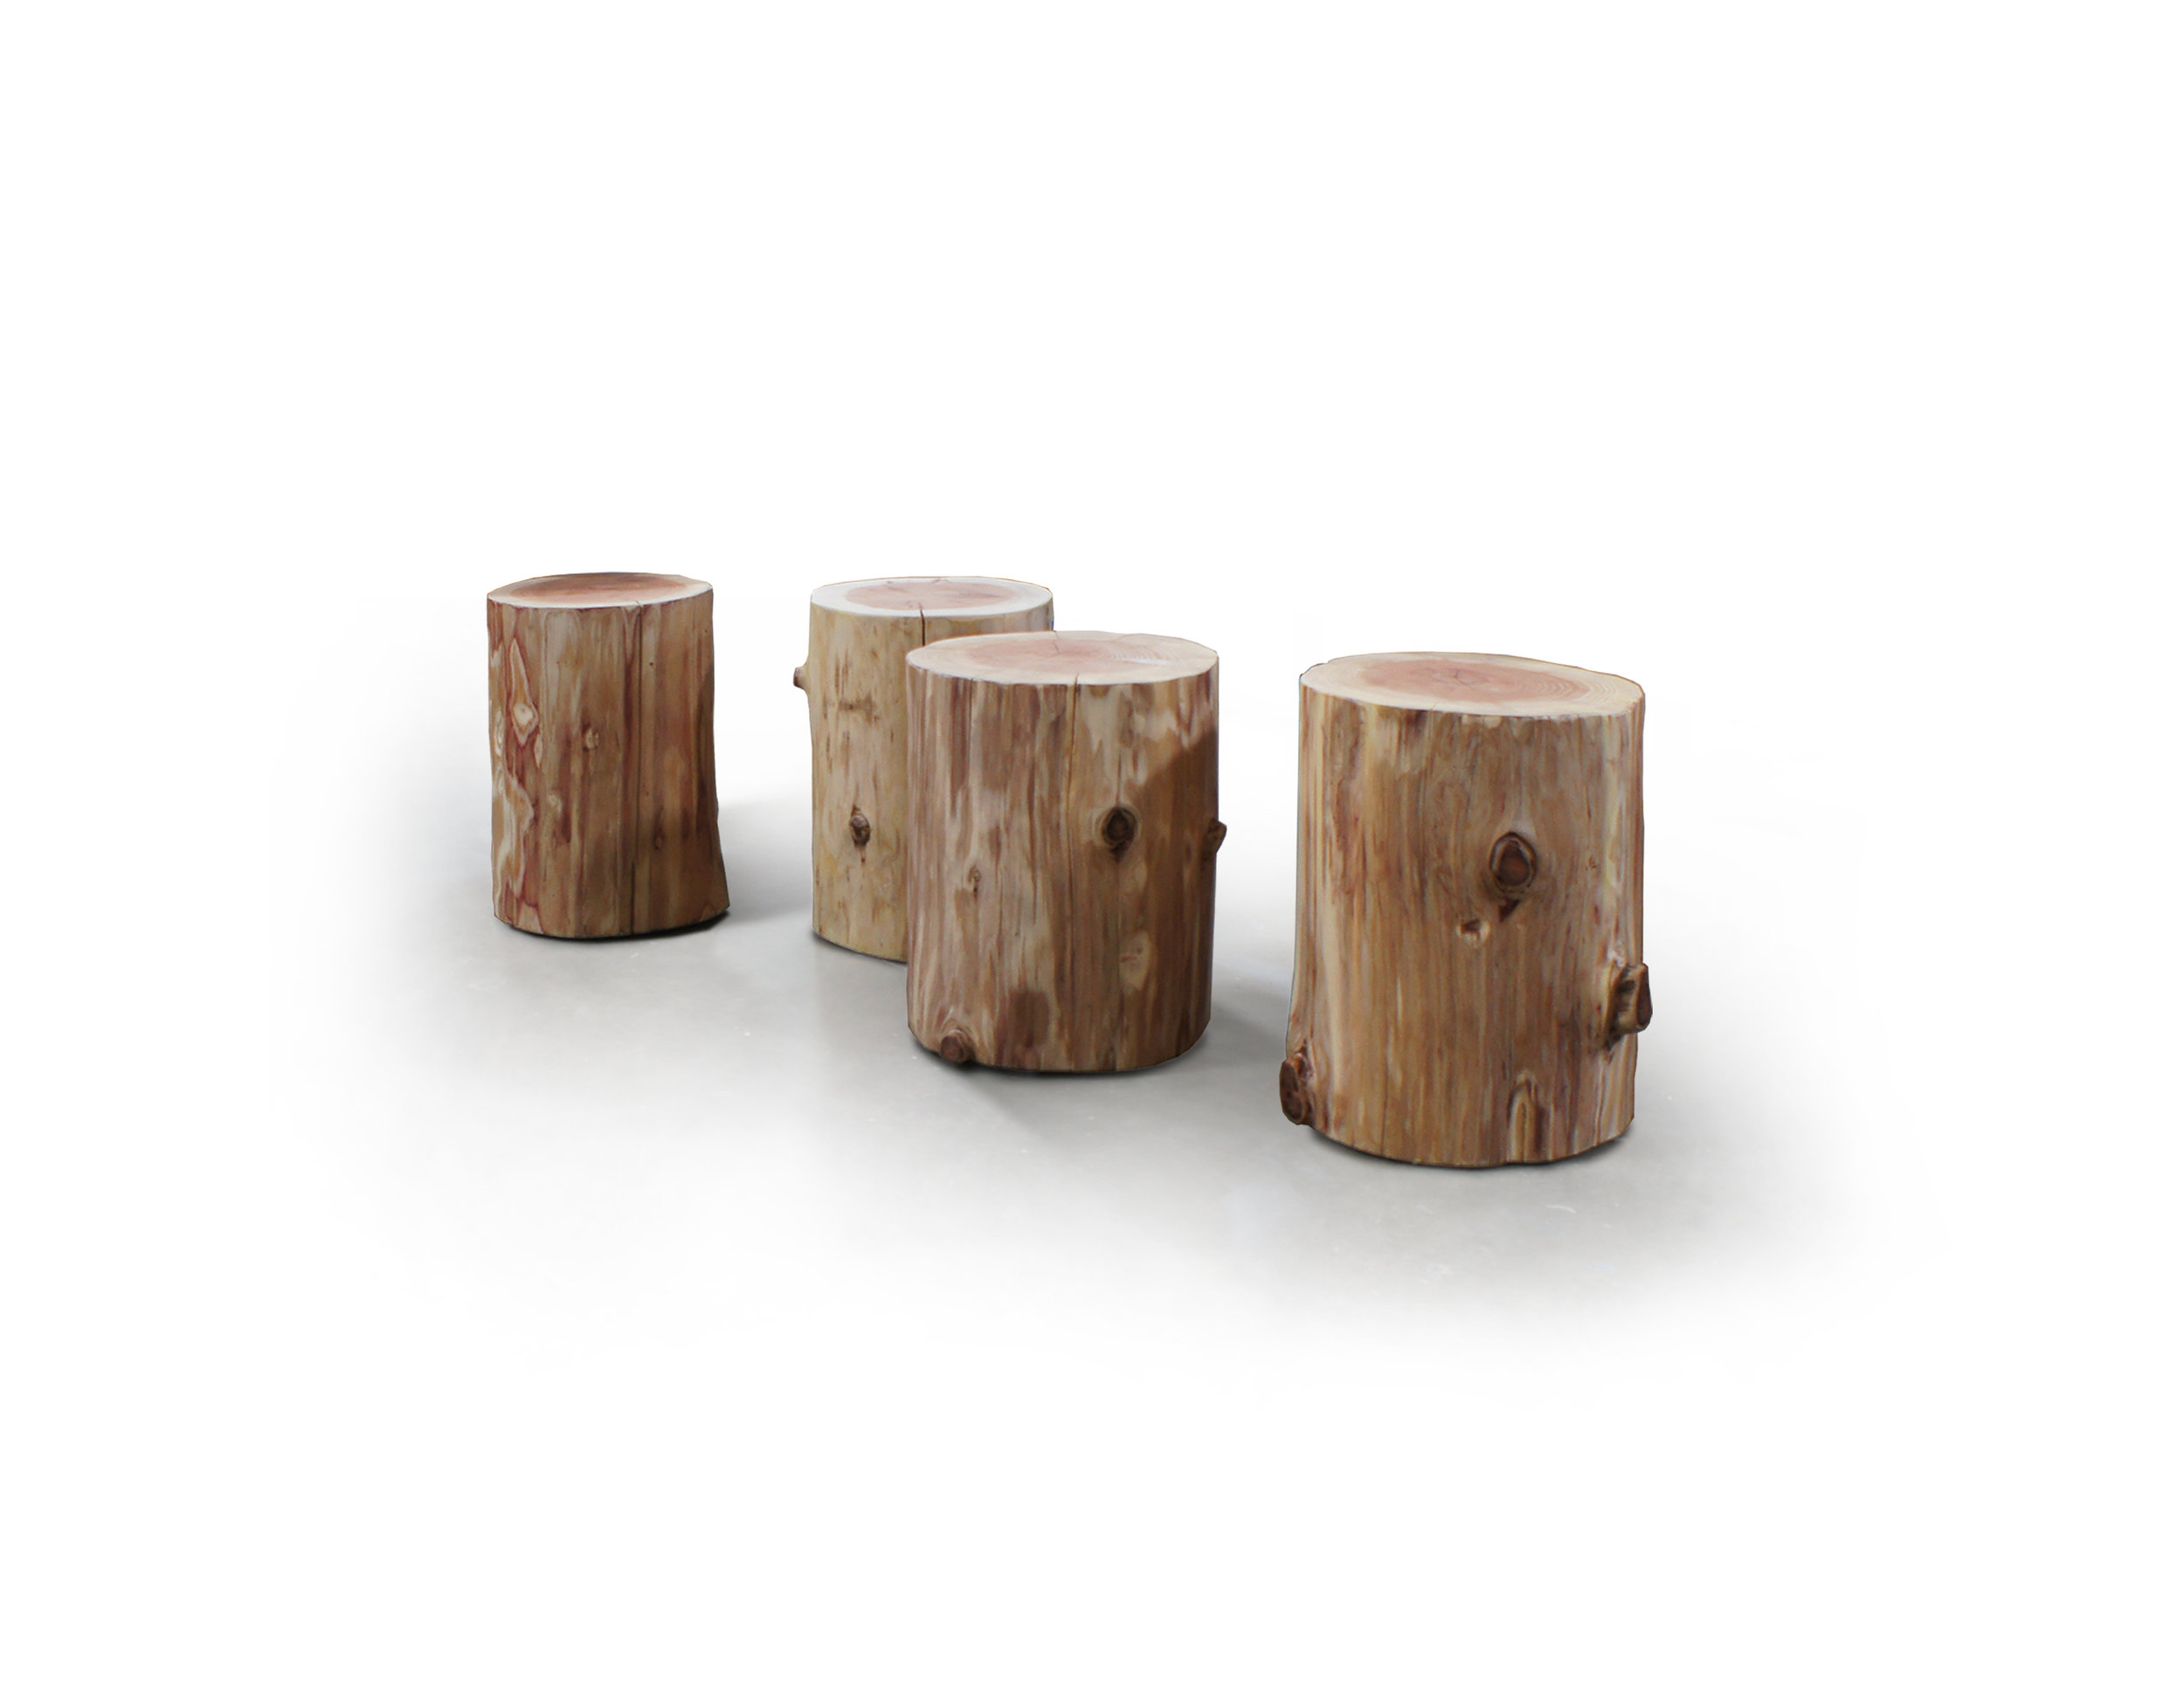 RECLAIMED DOUGLAS FIR STUMP TABLES FOR PHONE ROOMS